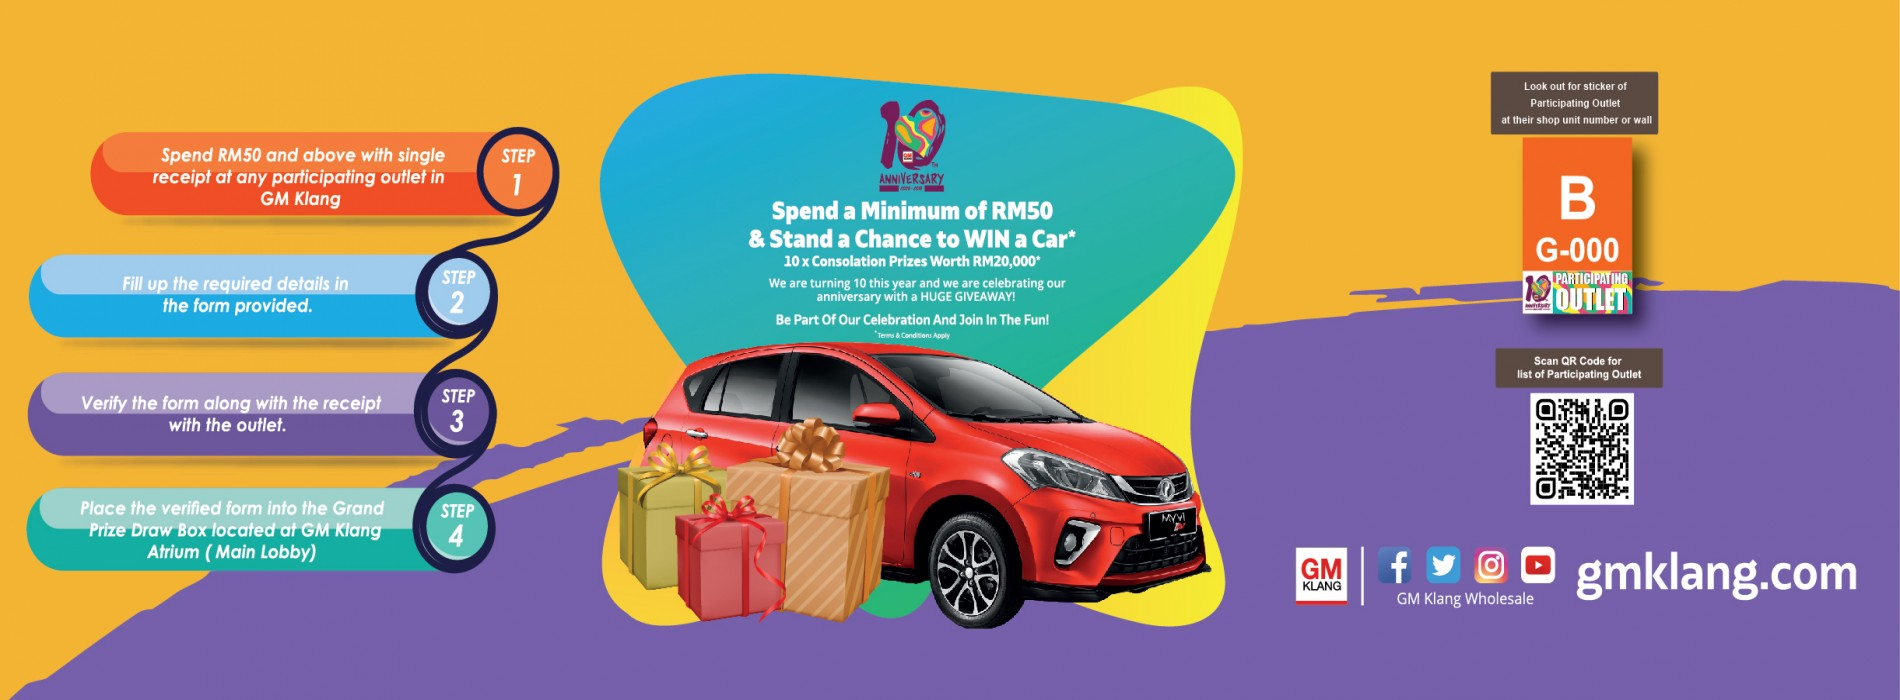 GM10 Grand Prize Lucky Draw 2019